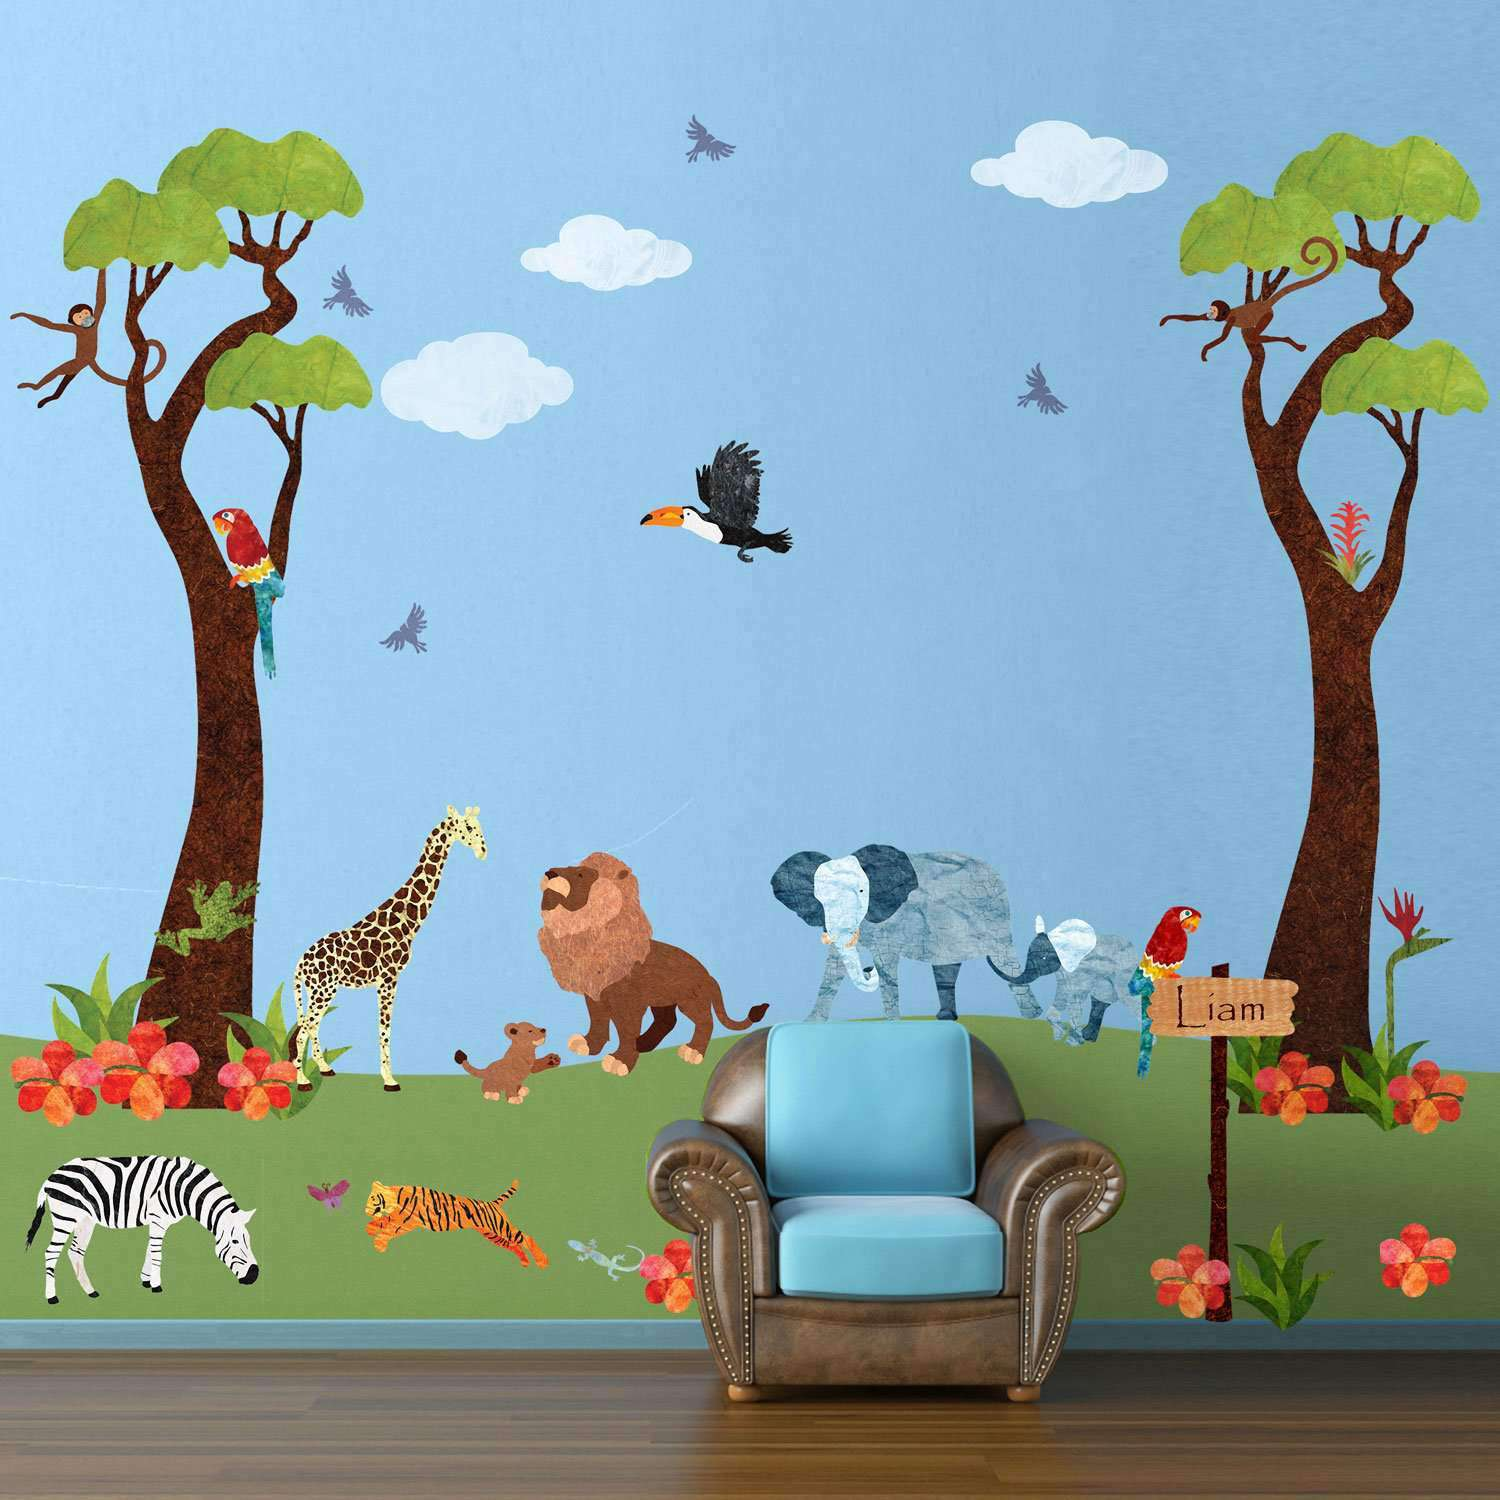 66445e6f3dfd6 Jungle Safari Wall Decal Sticker Kit - JUMBO SET ...